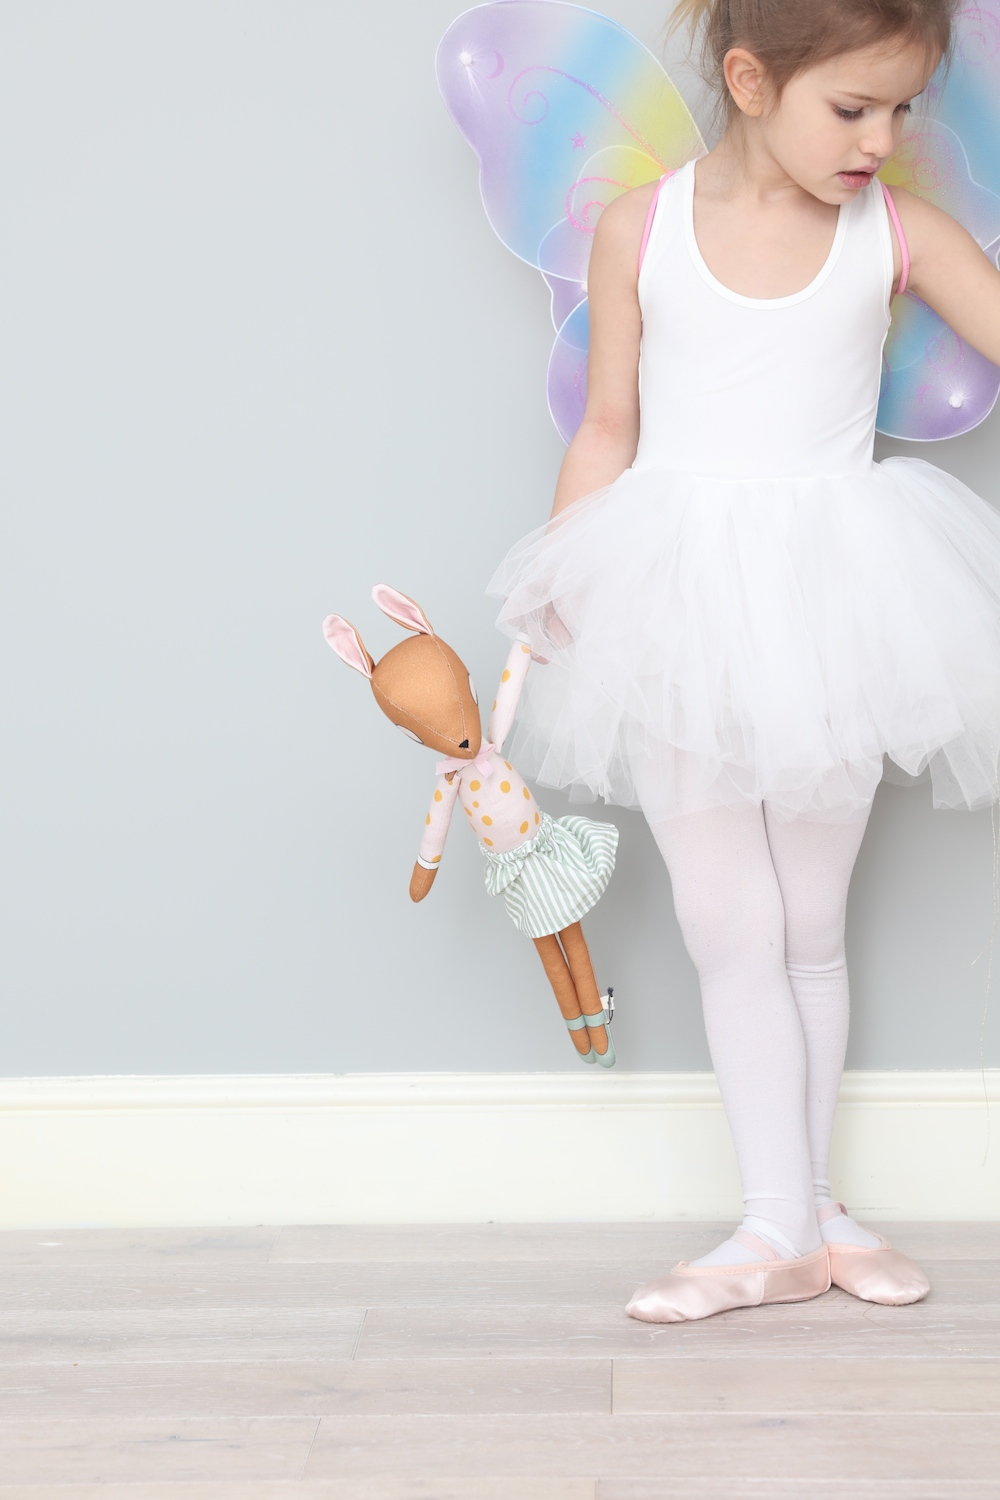 ballerina_girl_plum_nyc_girls_tutu